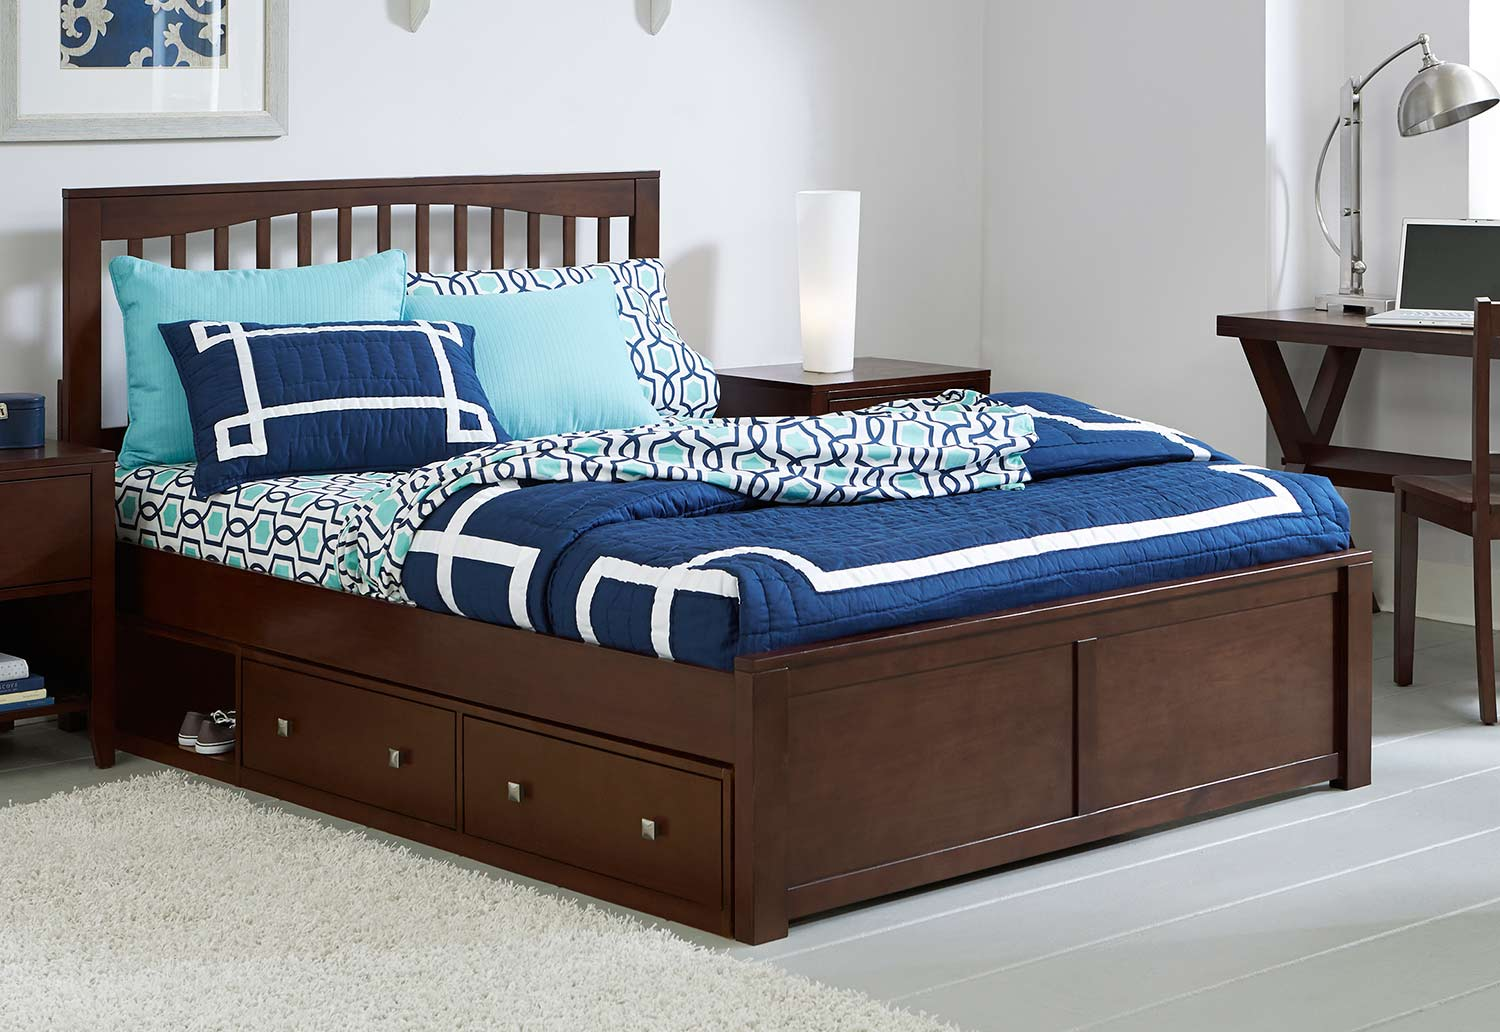 NE Kids Pulse Mission Bed With Storage - Chocolate